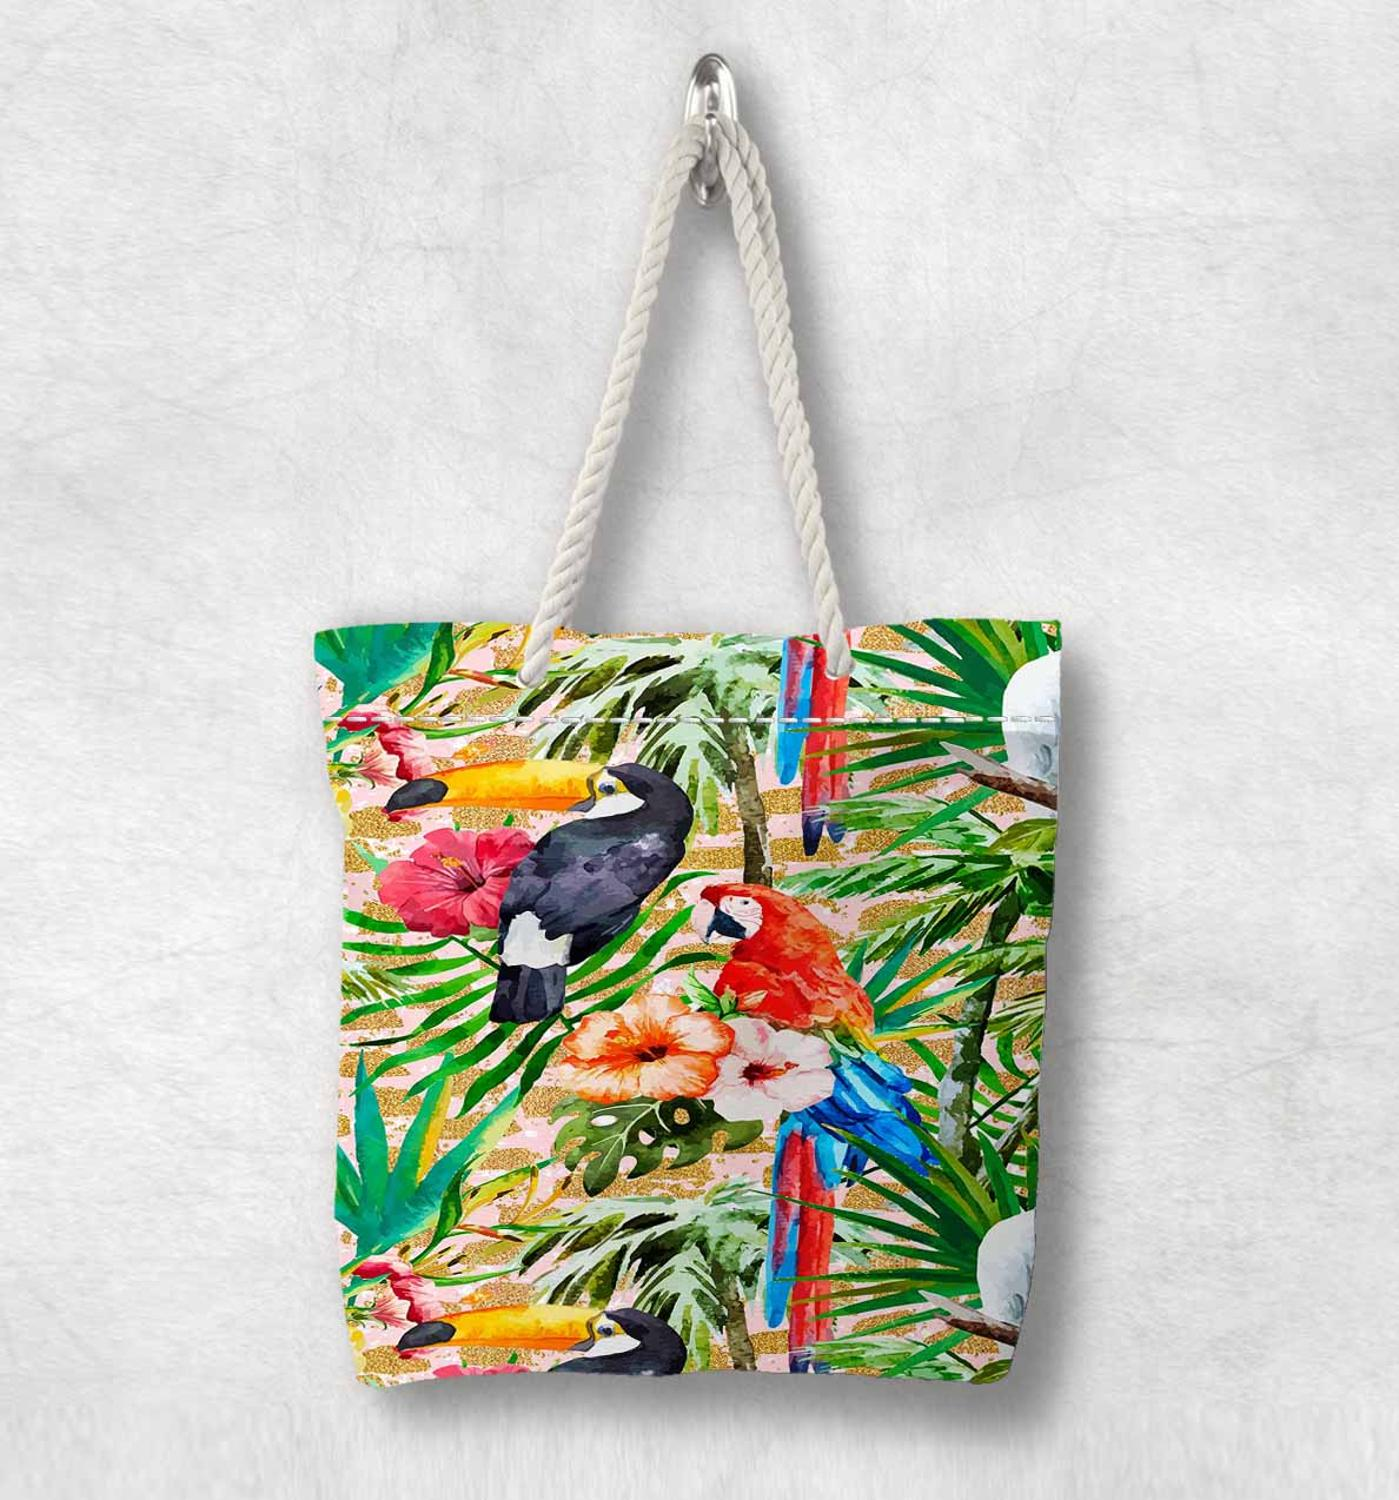 Else Tropical Jungle Green Leaves Parrots New Fashion White Rope Handle Canvas Bag Cotton Canvas Zippered Tote Bag Shoulder Bag